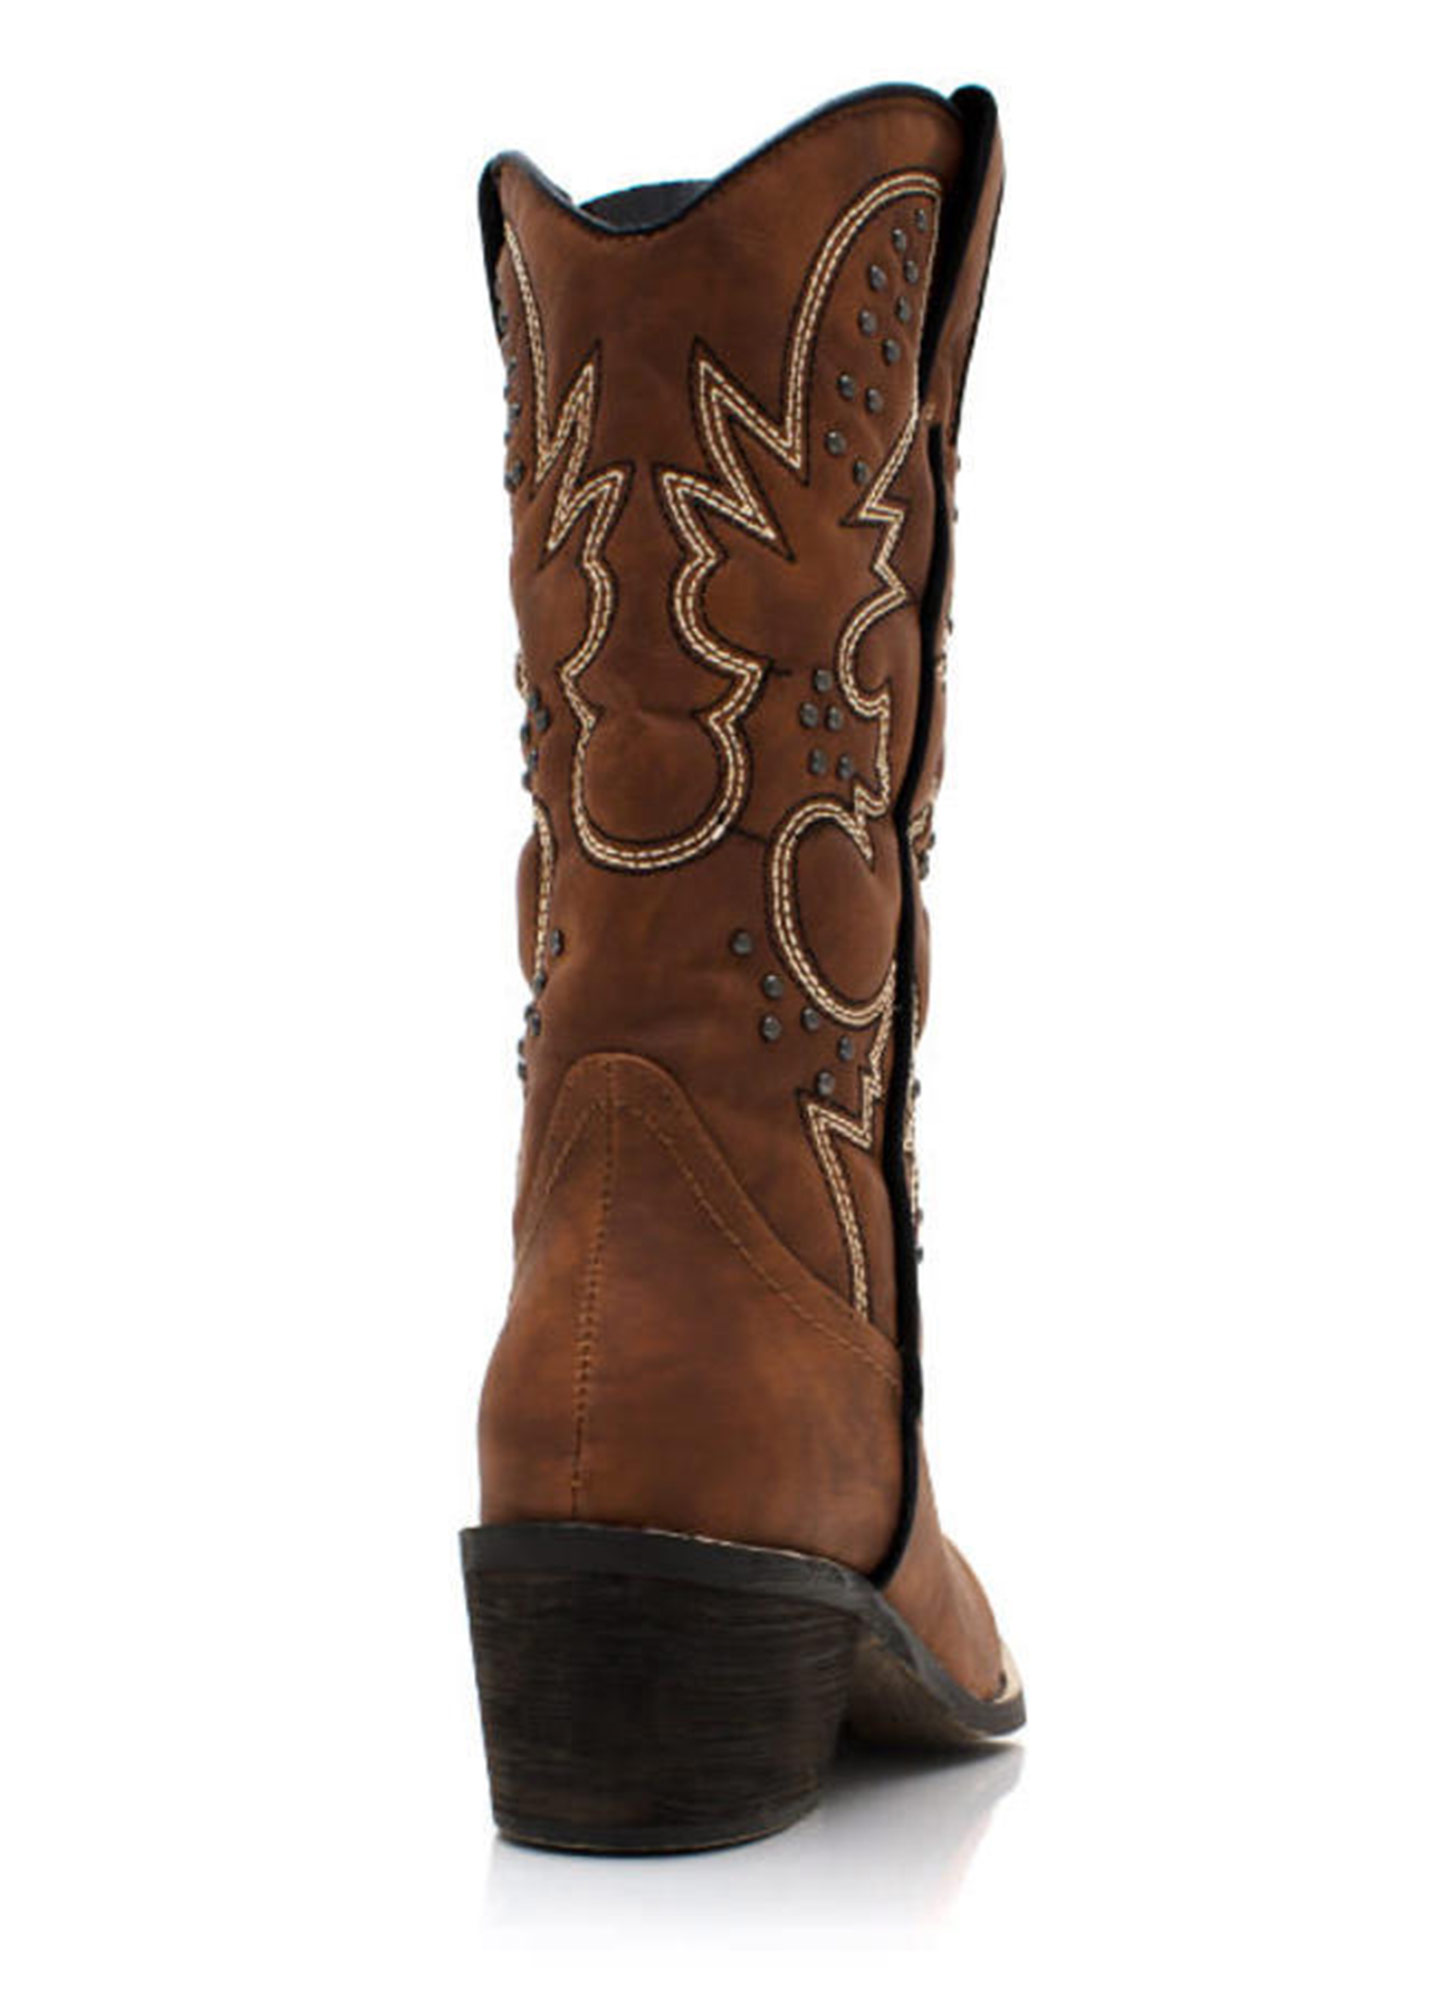 Get Stitches Studded Cowgirl Boots CHESTNUT